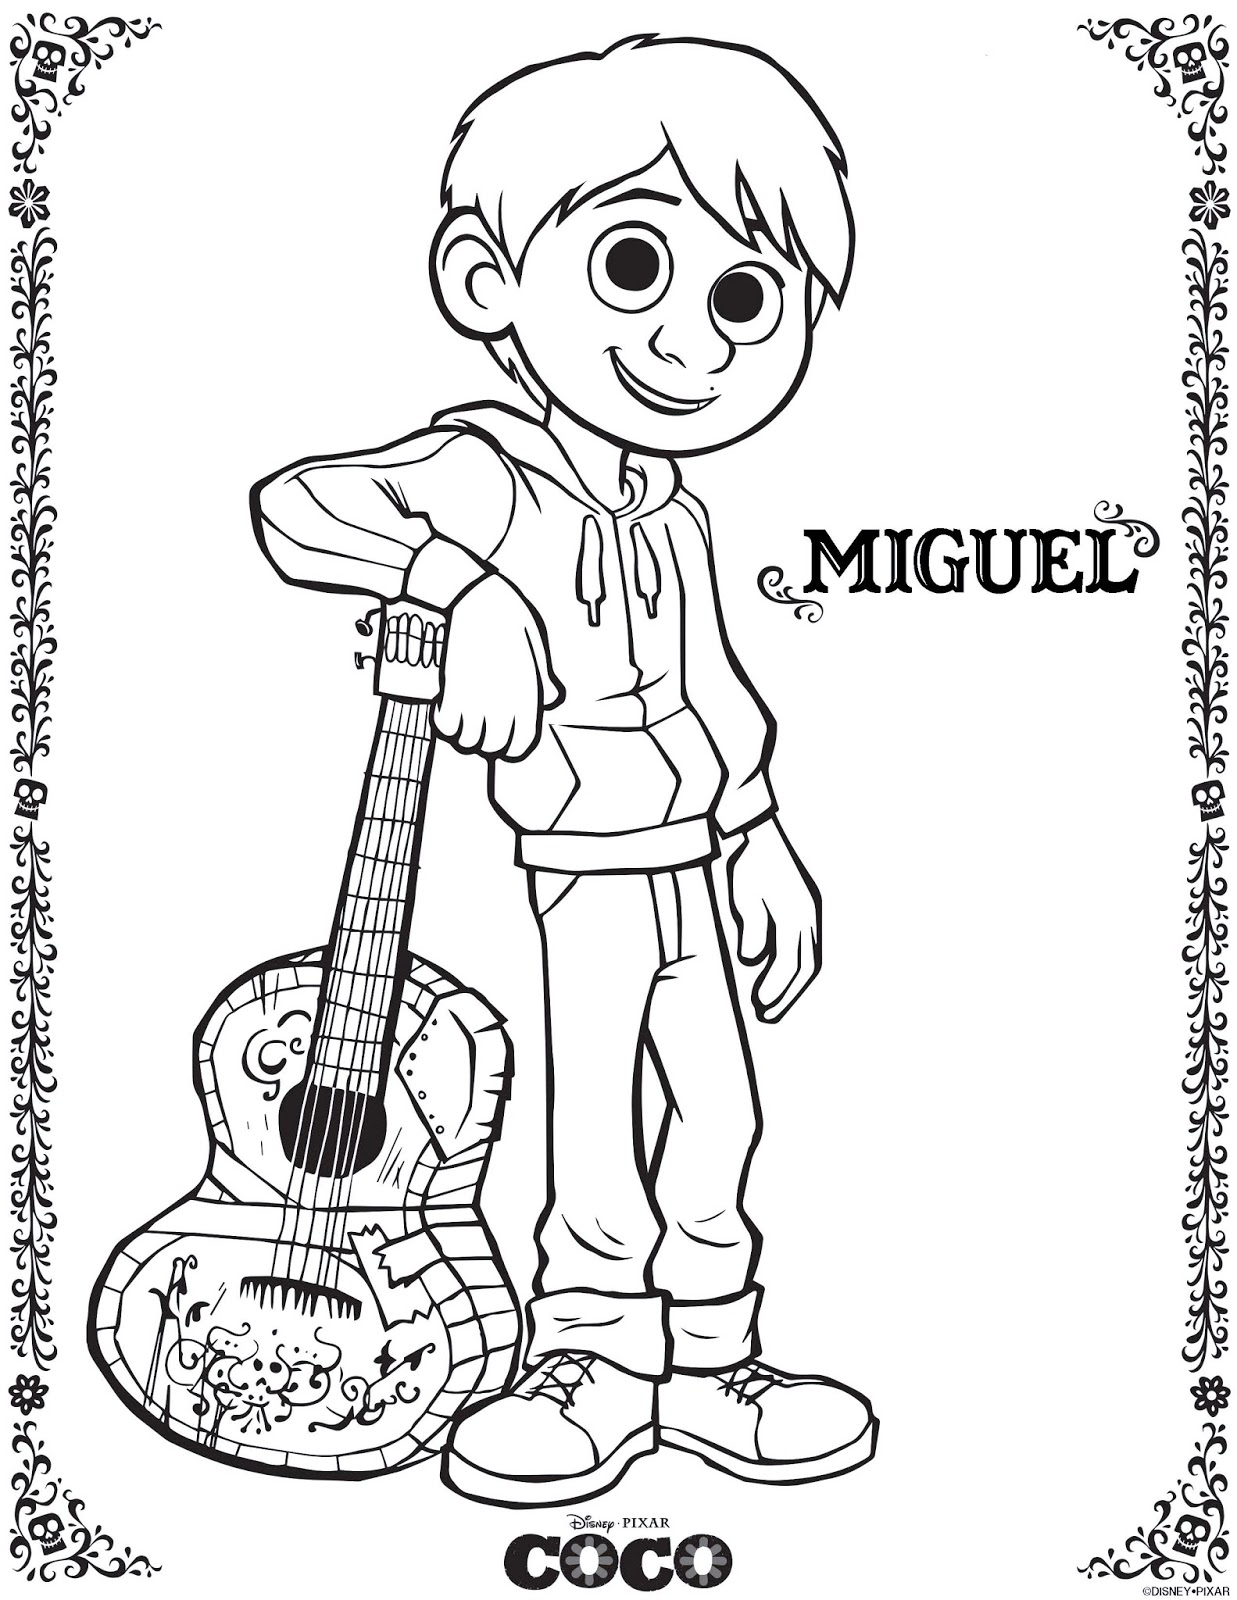 Coco Coloring Pages April Edition